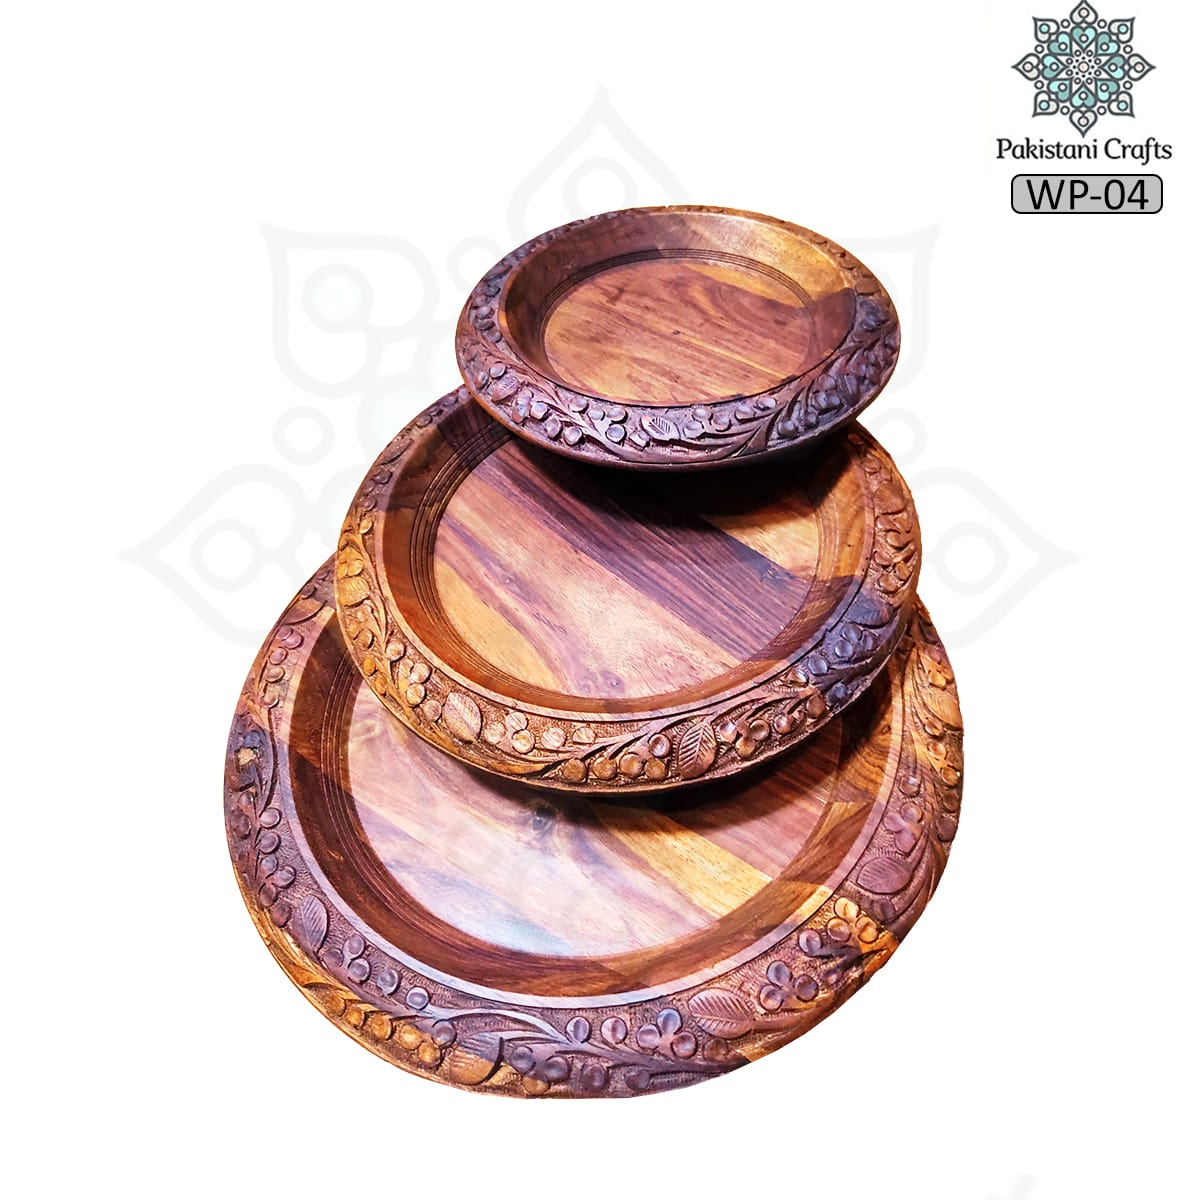 Wooden Plate, Wood Dinner Plates, Round Wood Plates Set of 3